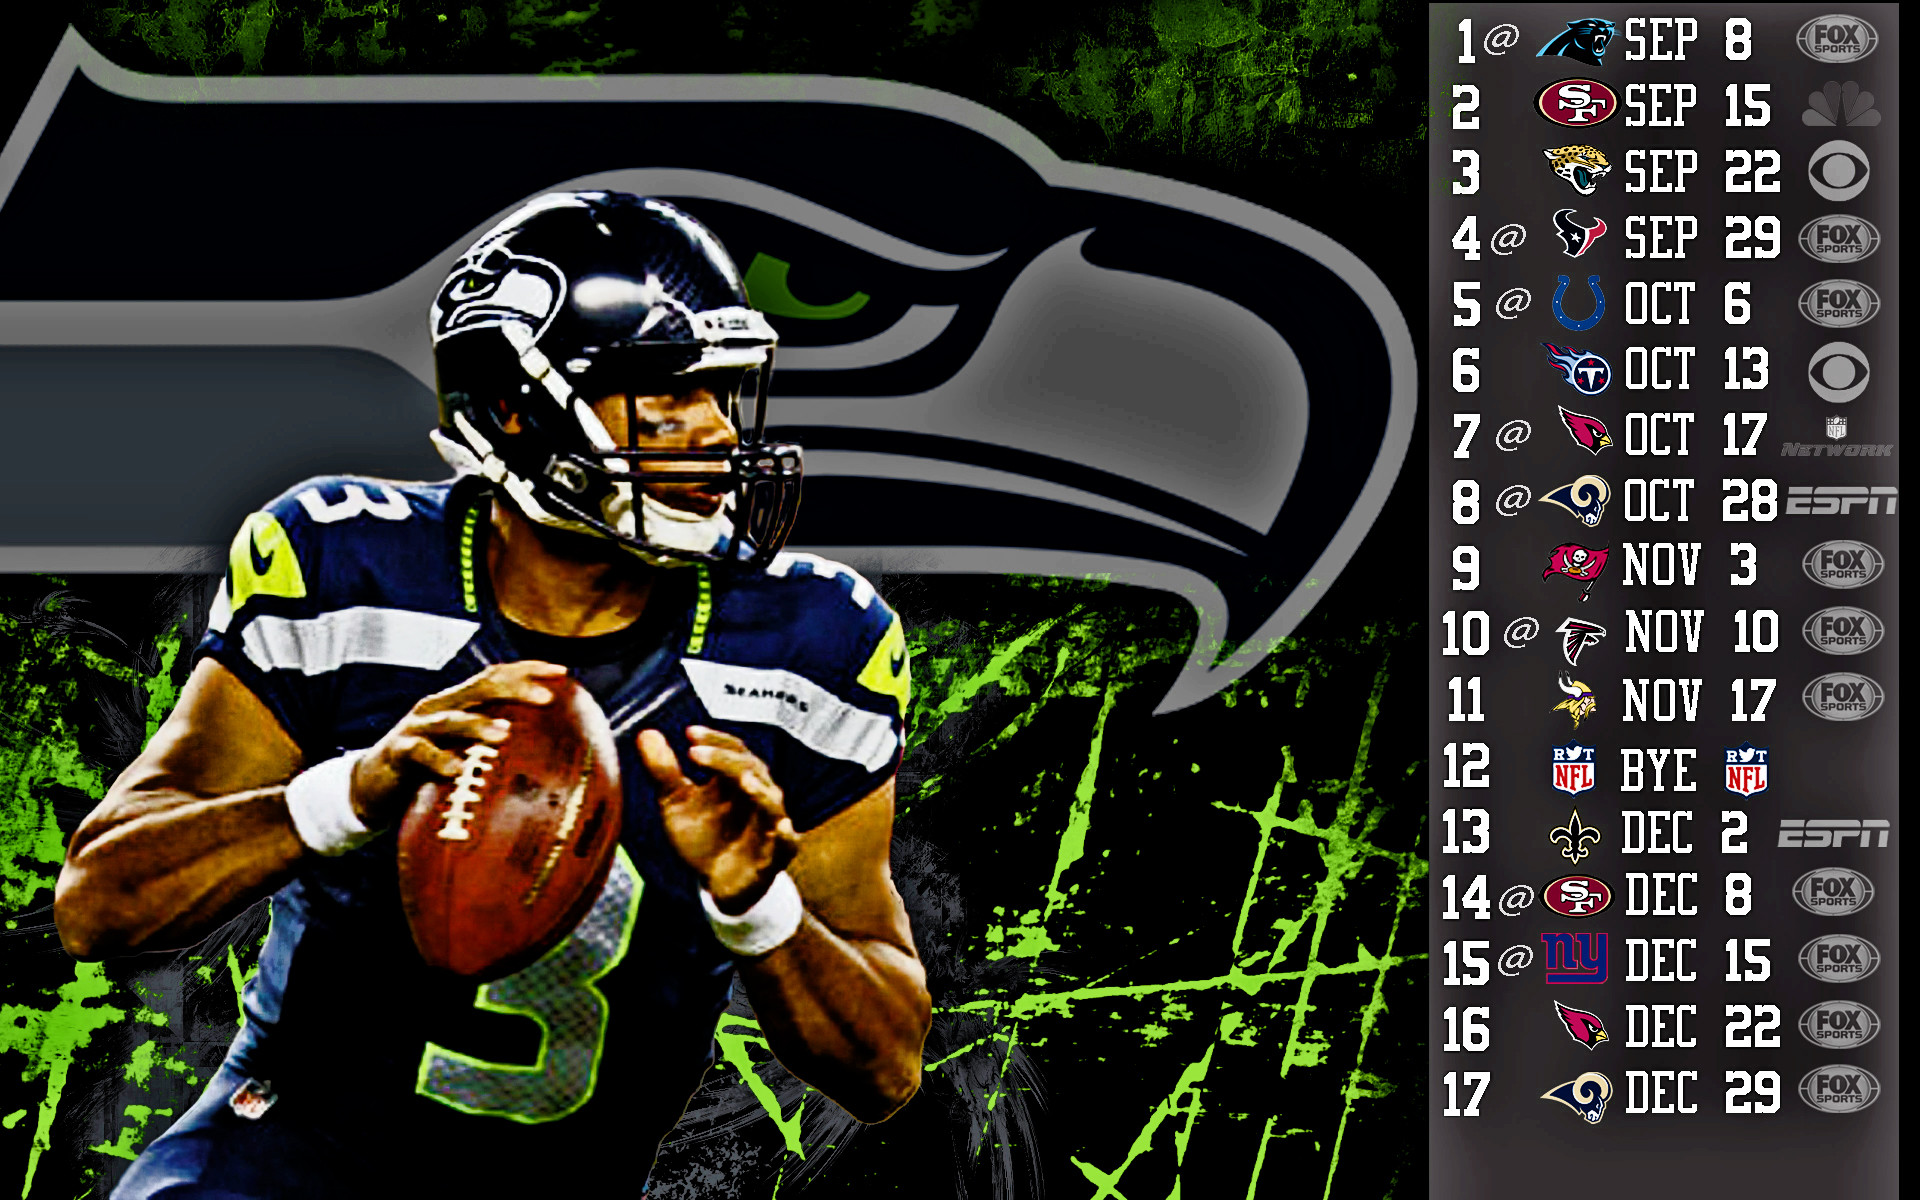 Seahawks wallpaper and screensavers 68 images 1920x1280 patriots uwoofers02 1920x1280 here voltagebd Images